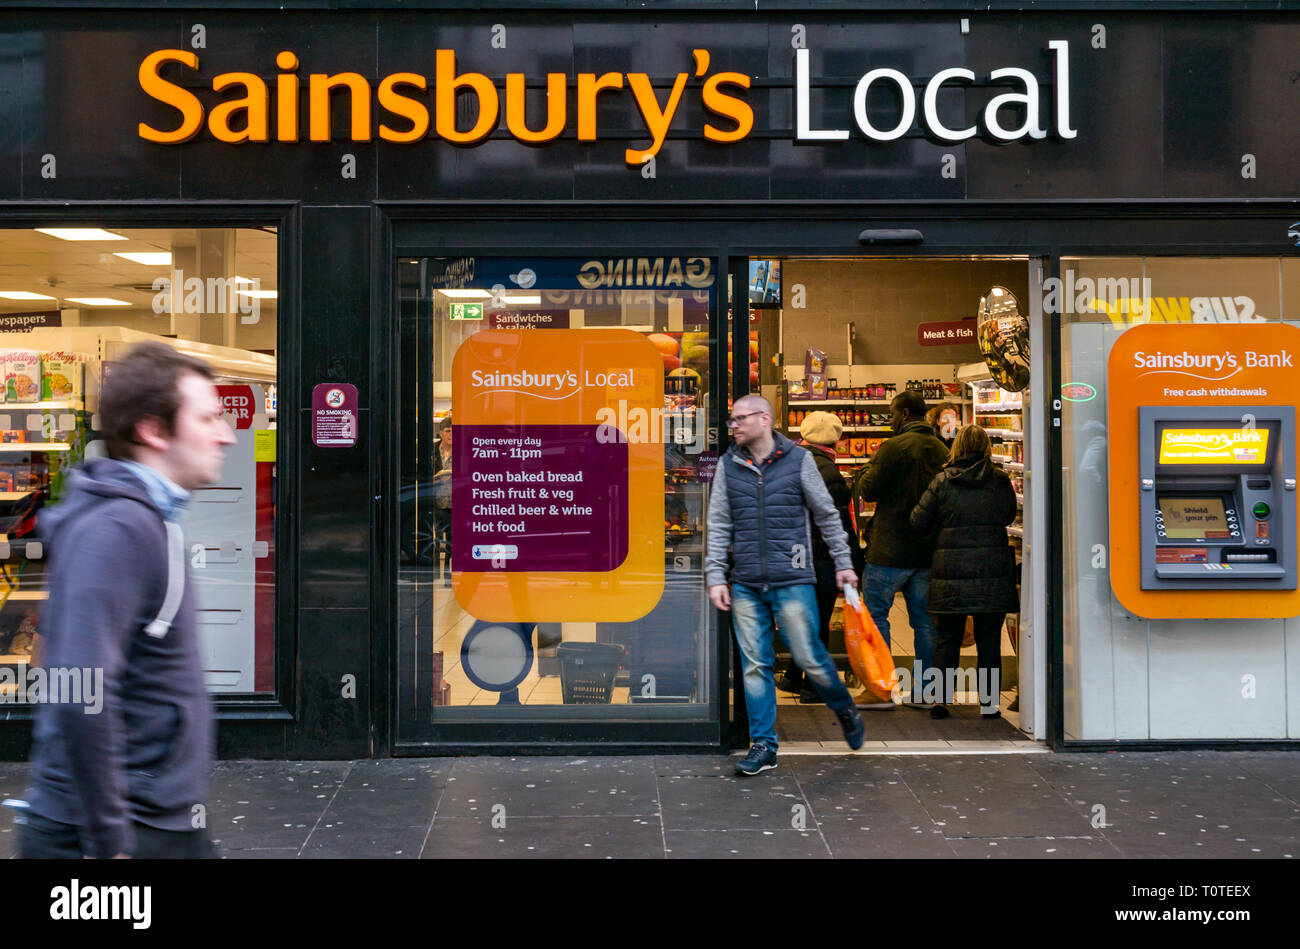 People going in and out of Sainsbury's Local grocery shop, Argyle Street, Glasgow, Scotland, UK - Stock Image